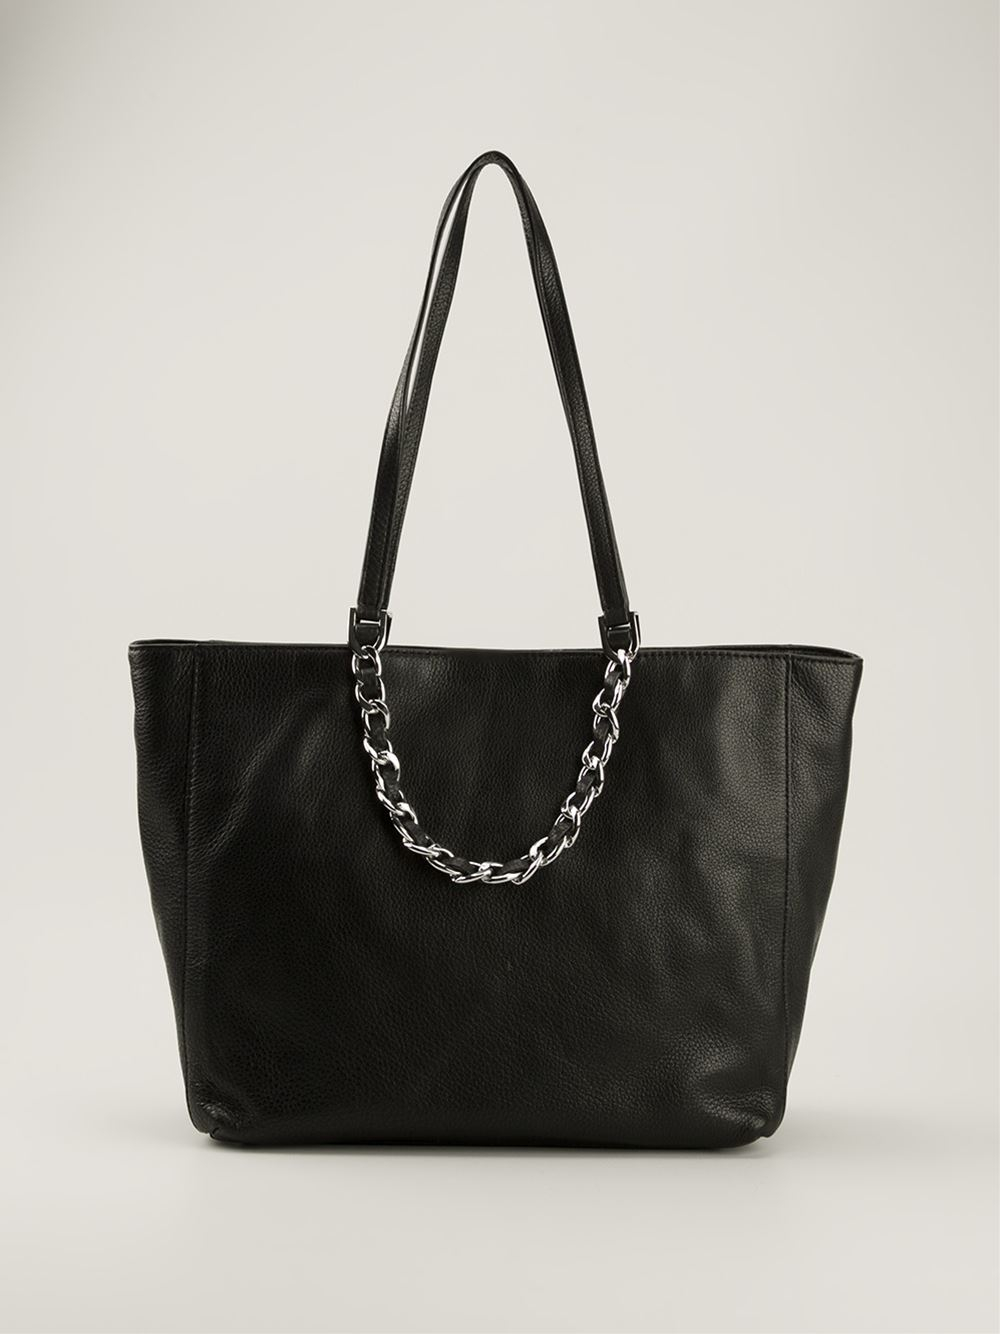 michael michael kors harper shopper tote in black lyst. Black Bedroom Furniture Sets. Home Design Ideas